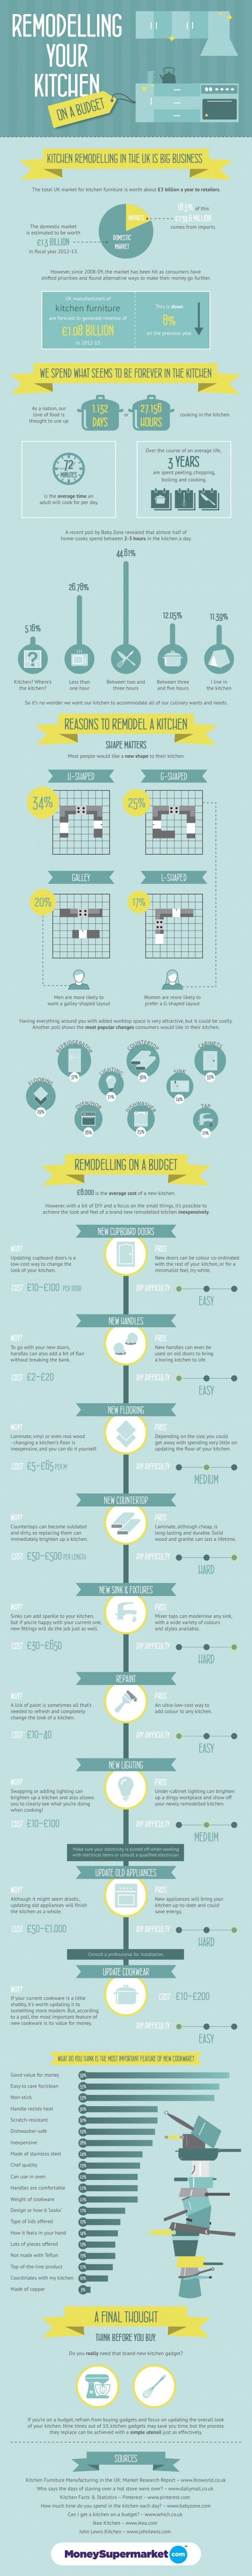 Remodeling your kitchen on a budget Infographic | Infographics ...